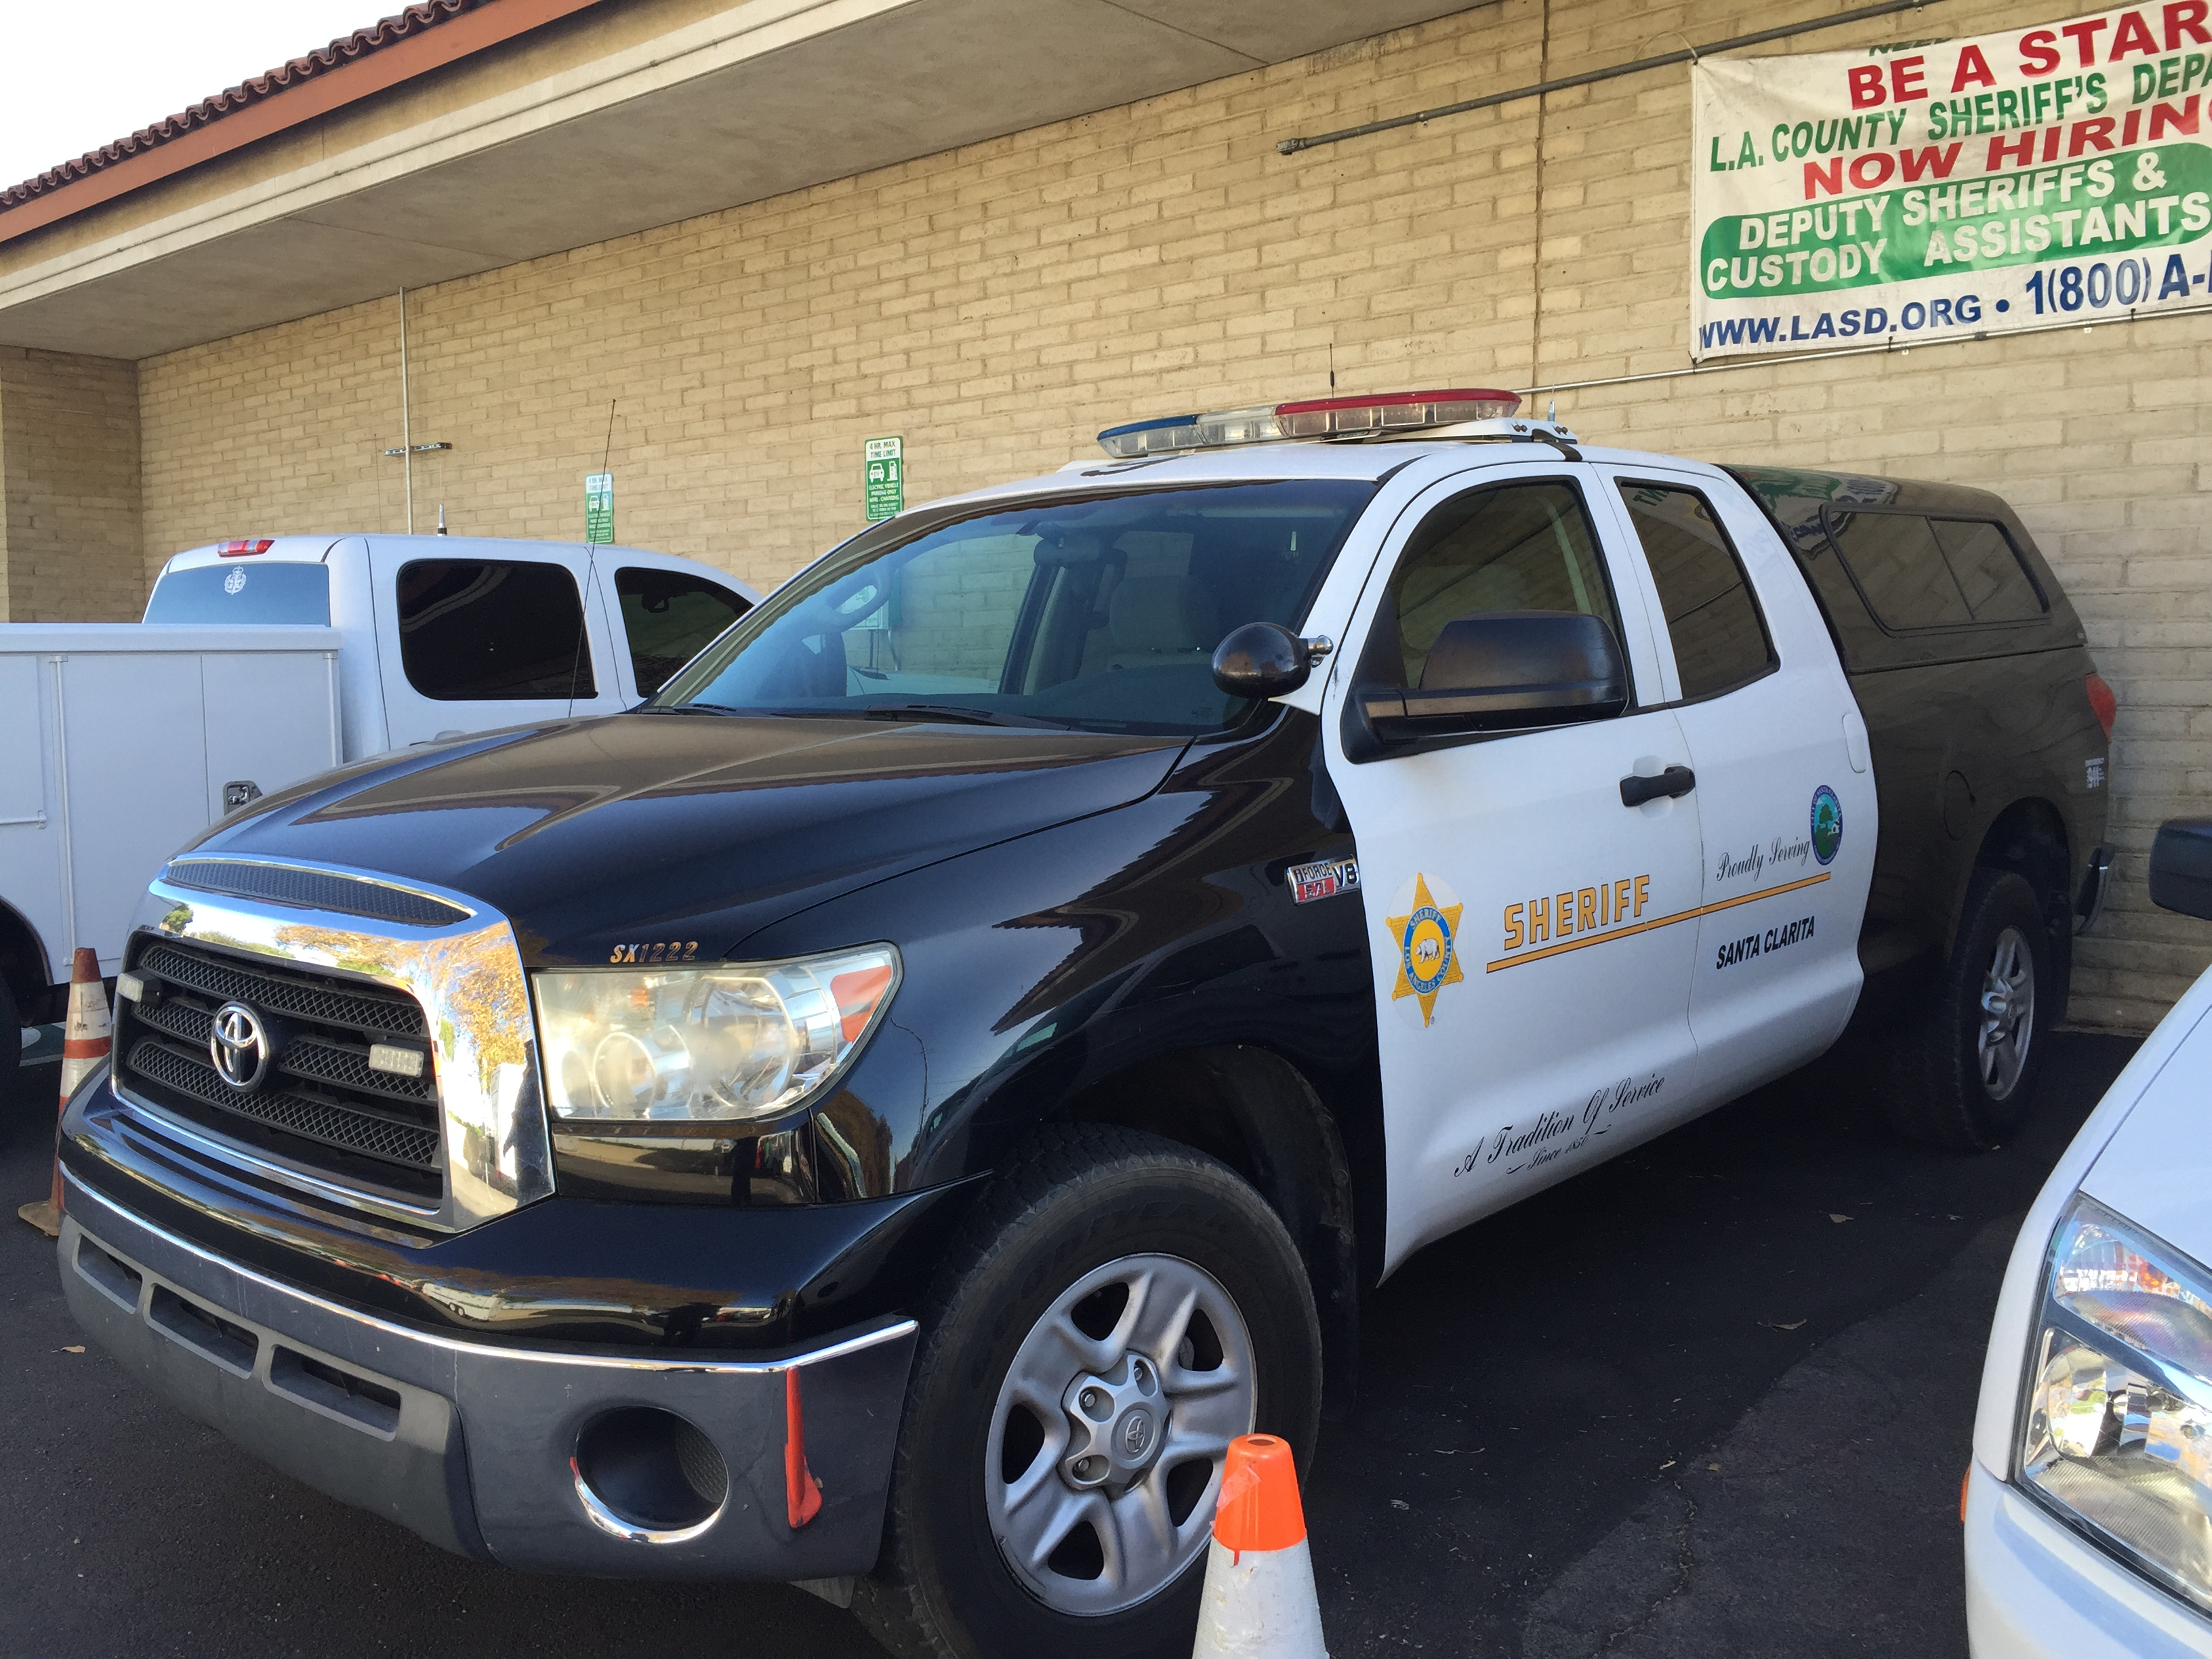 SCV Deputies in Santa Clarita. Photo SCV Bail Bonds